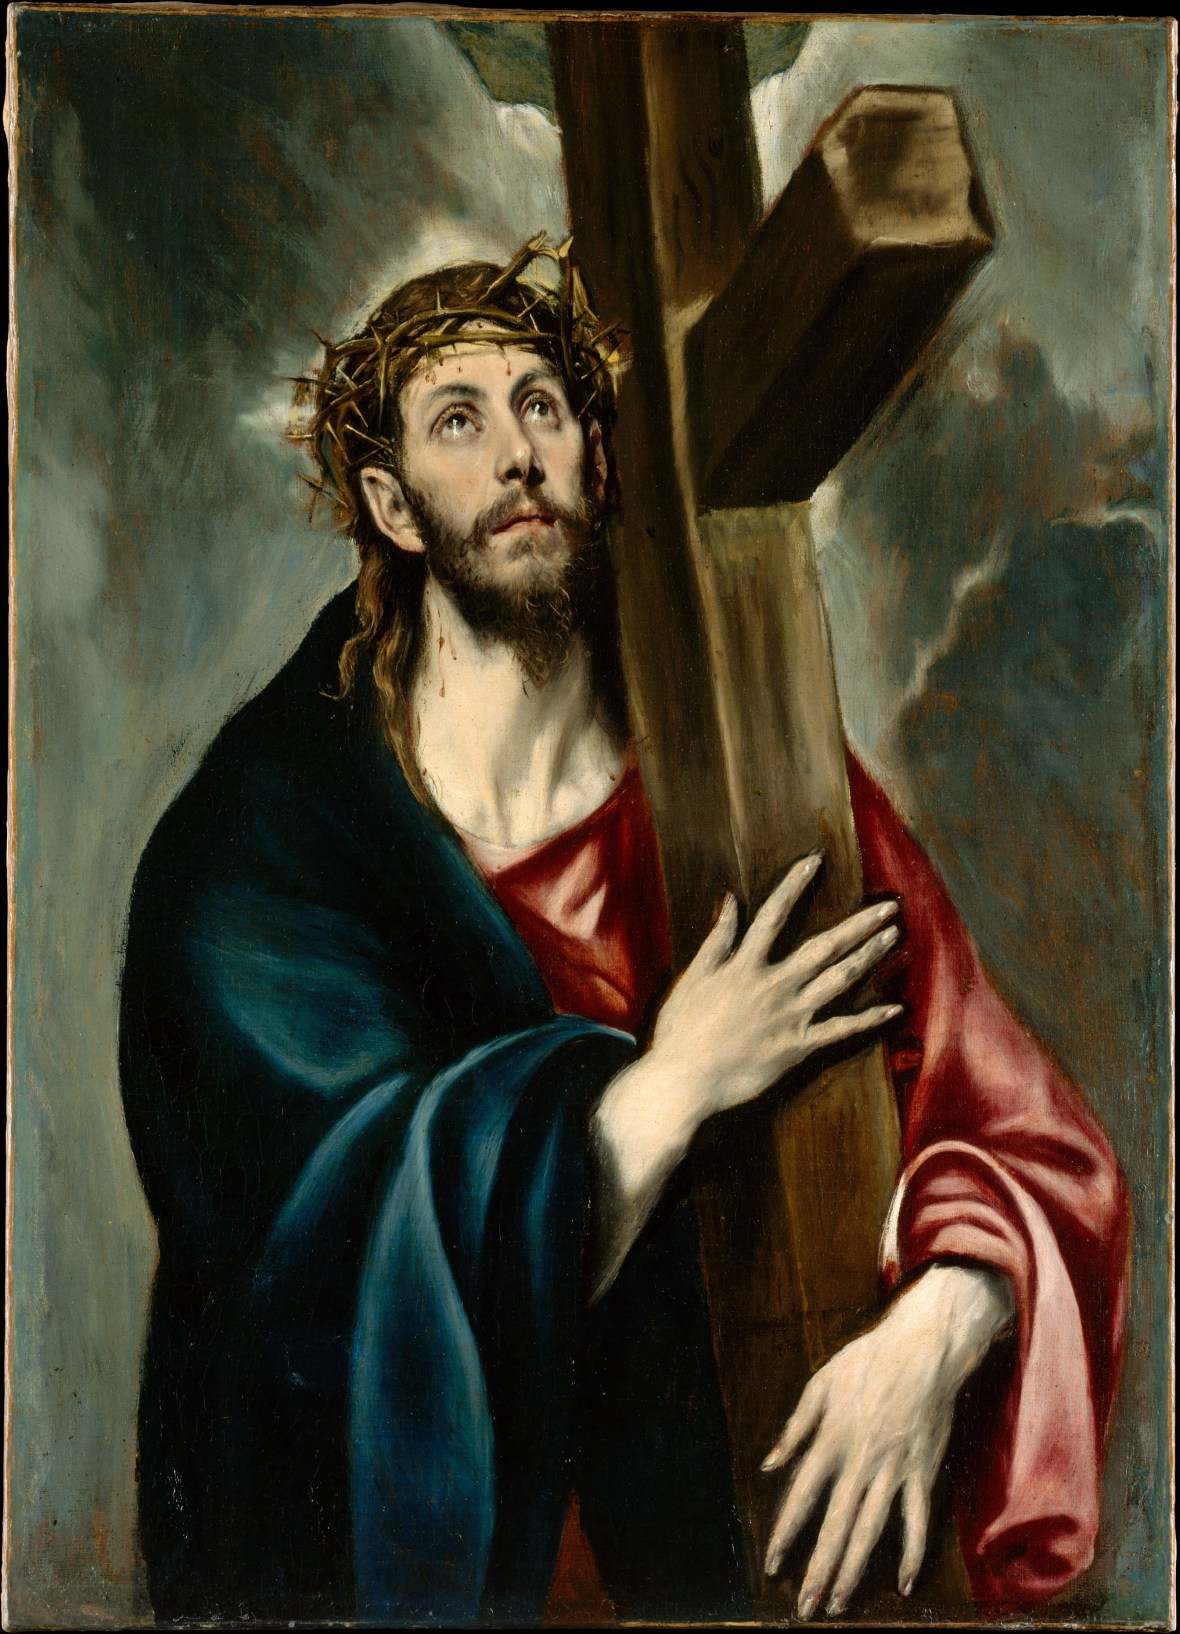 El Greco, Christ Carrying the Cross,1577-1587